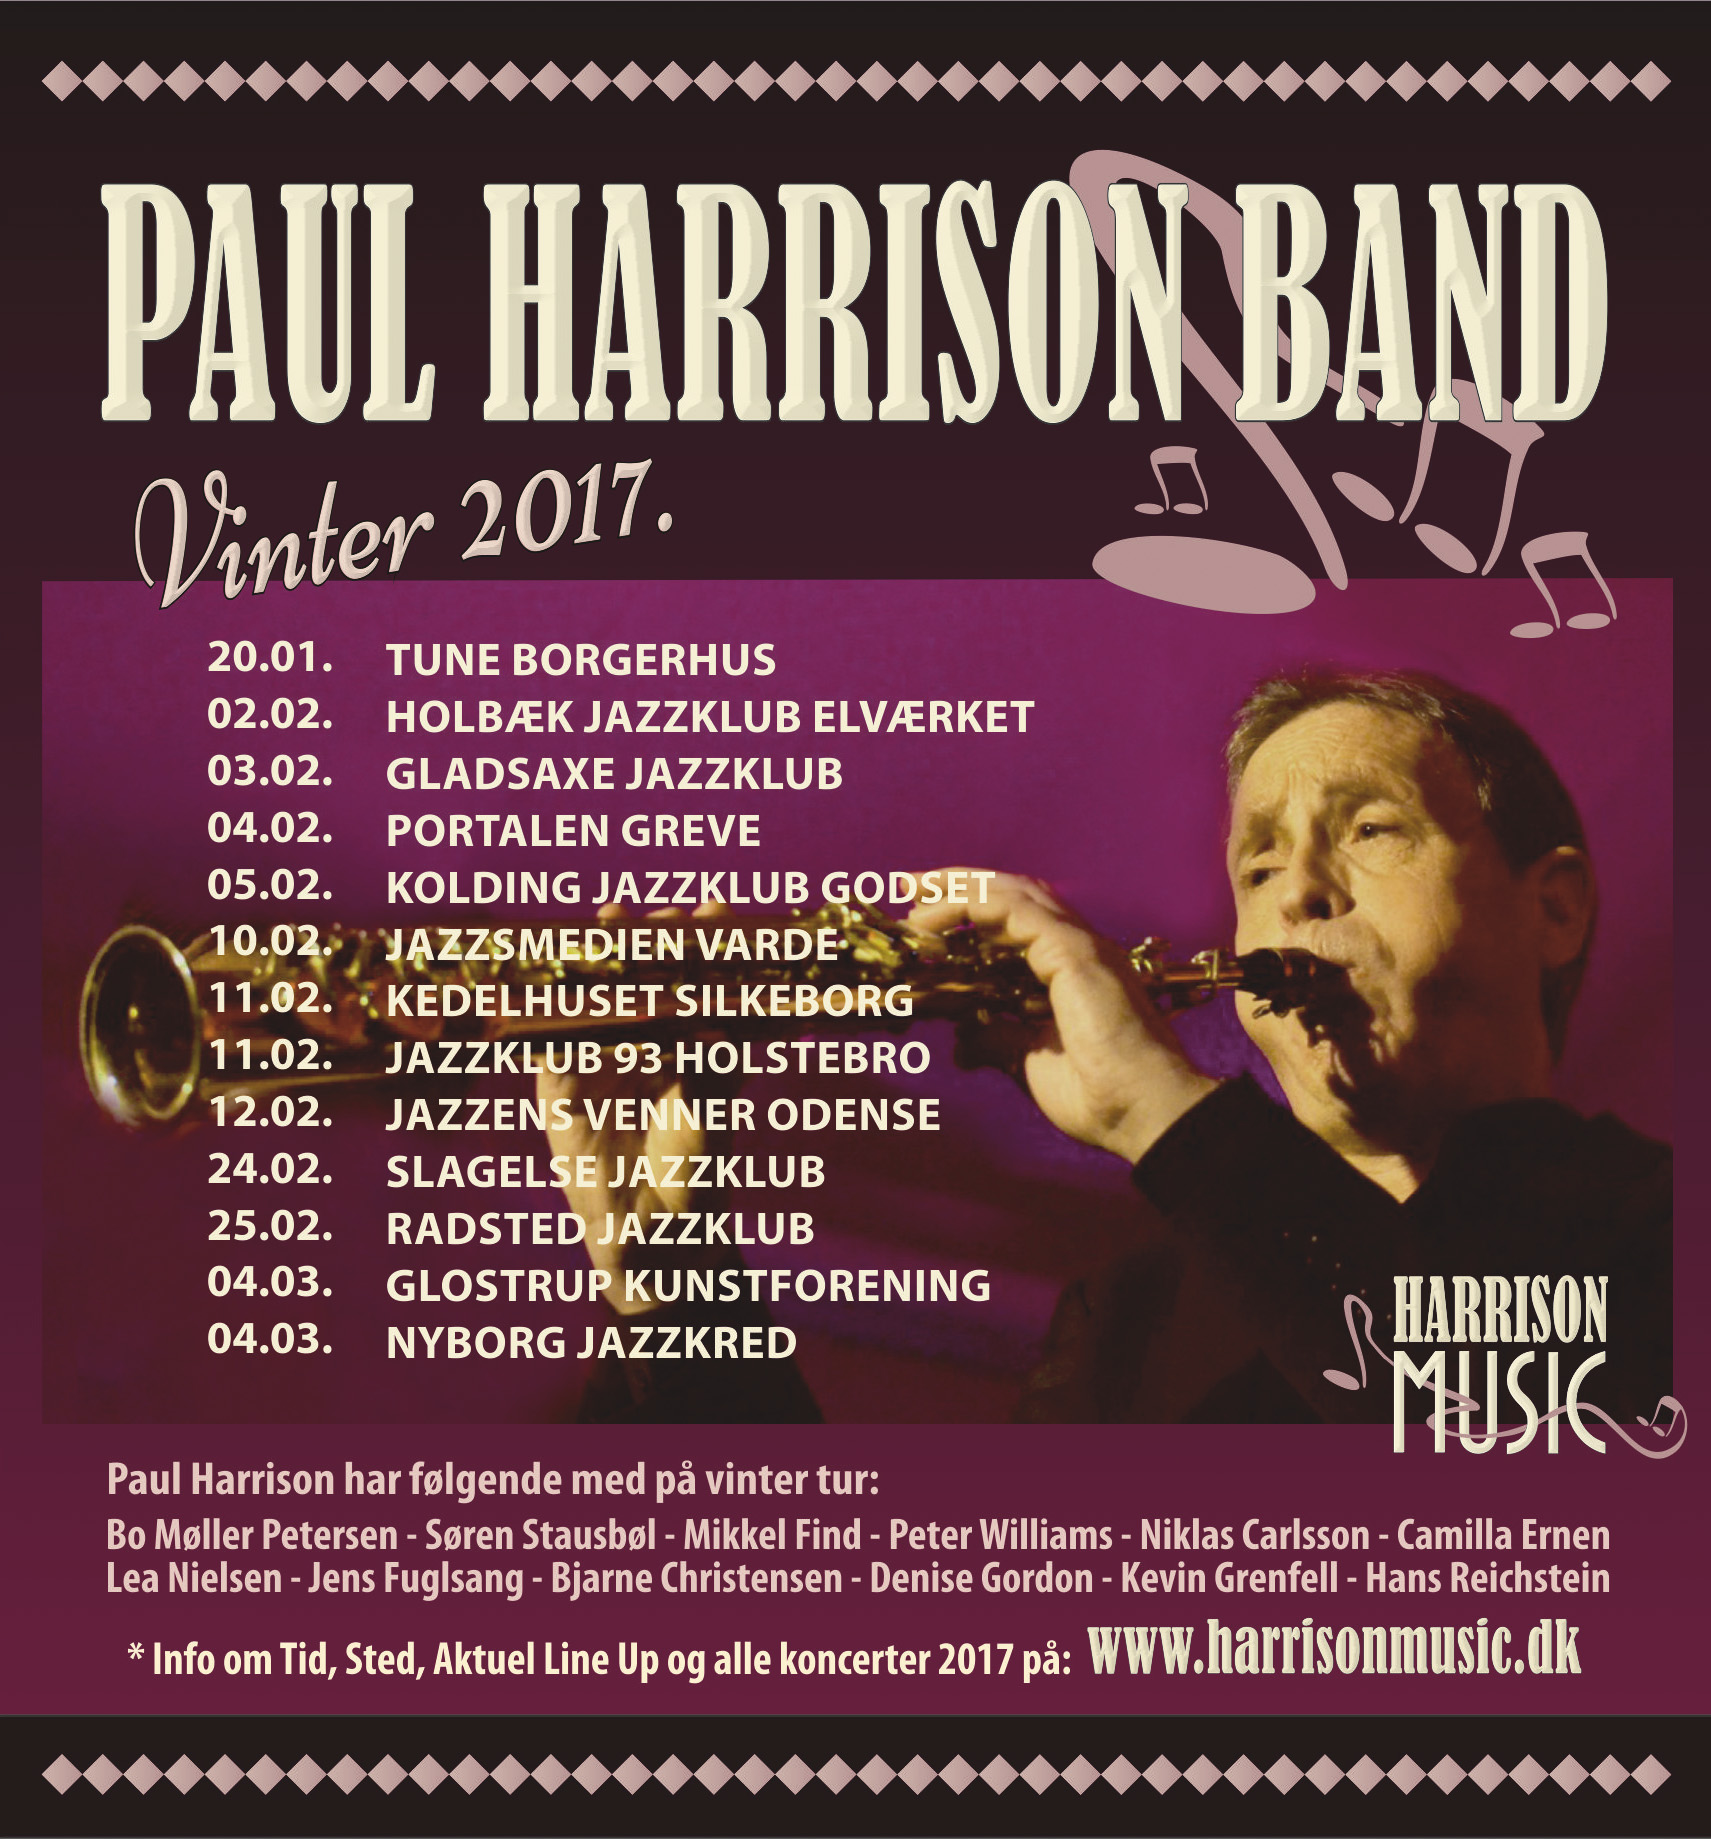 PAUL HARRISON BAND - Vinter 2017.